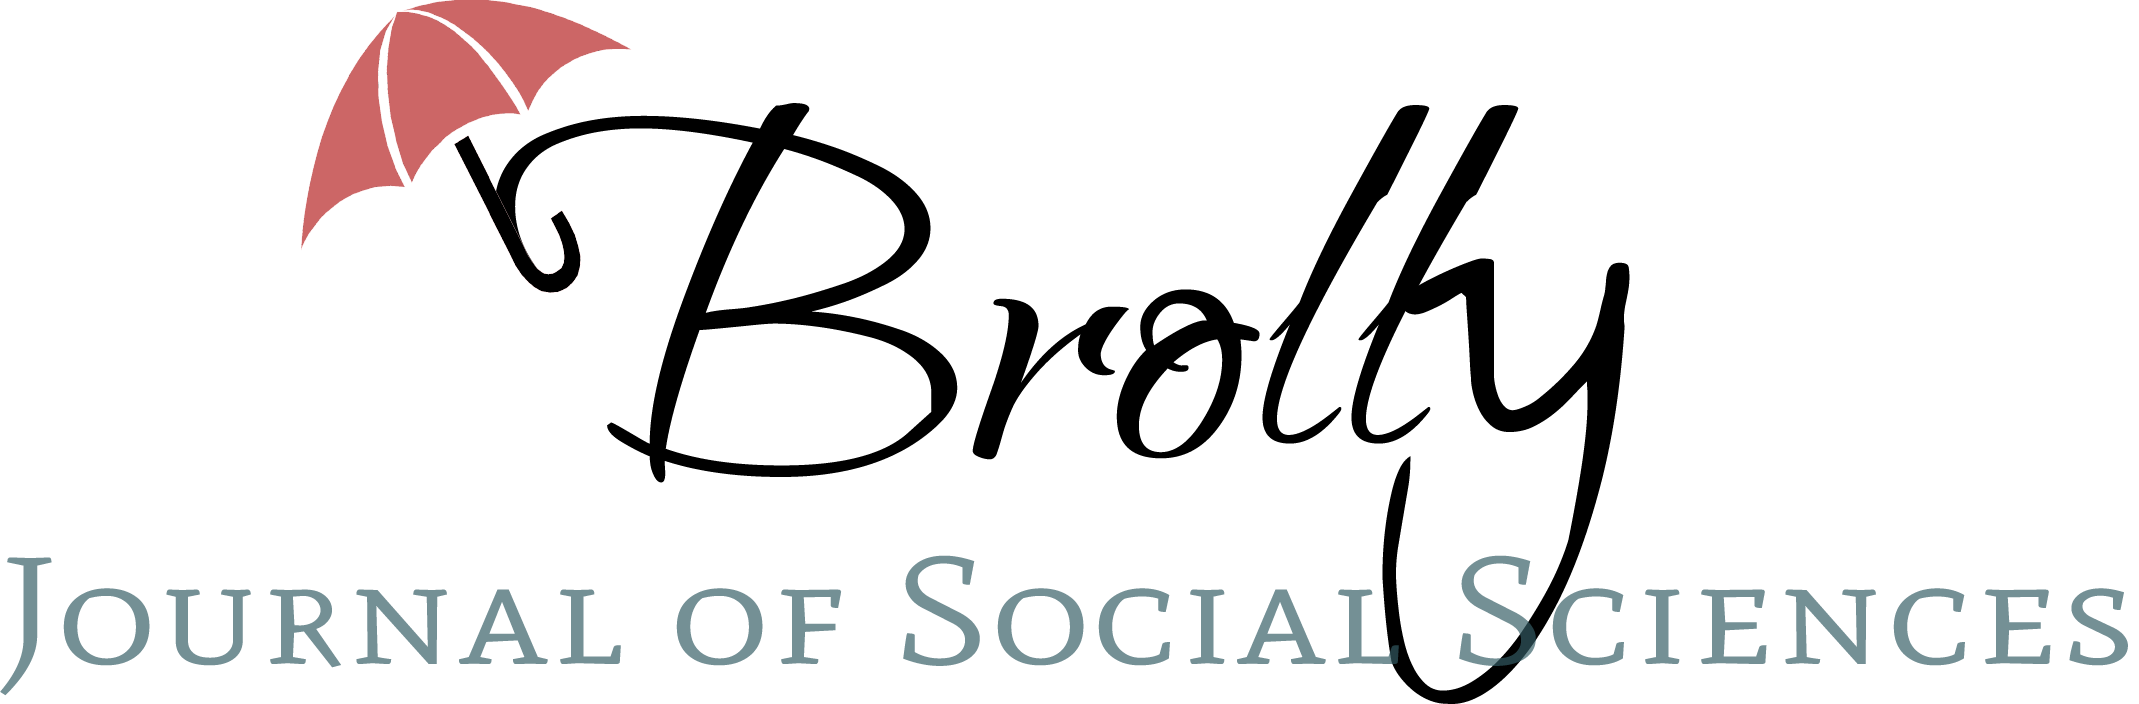 Brolly. Journal of Social Sciences. Journals. London Academic Publishing